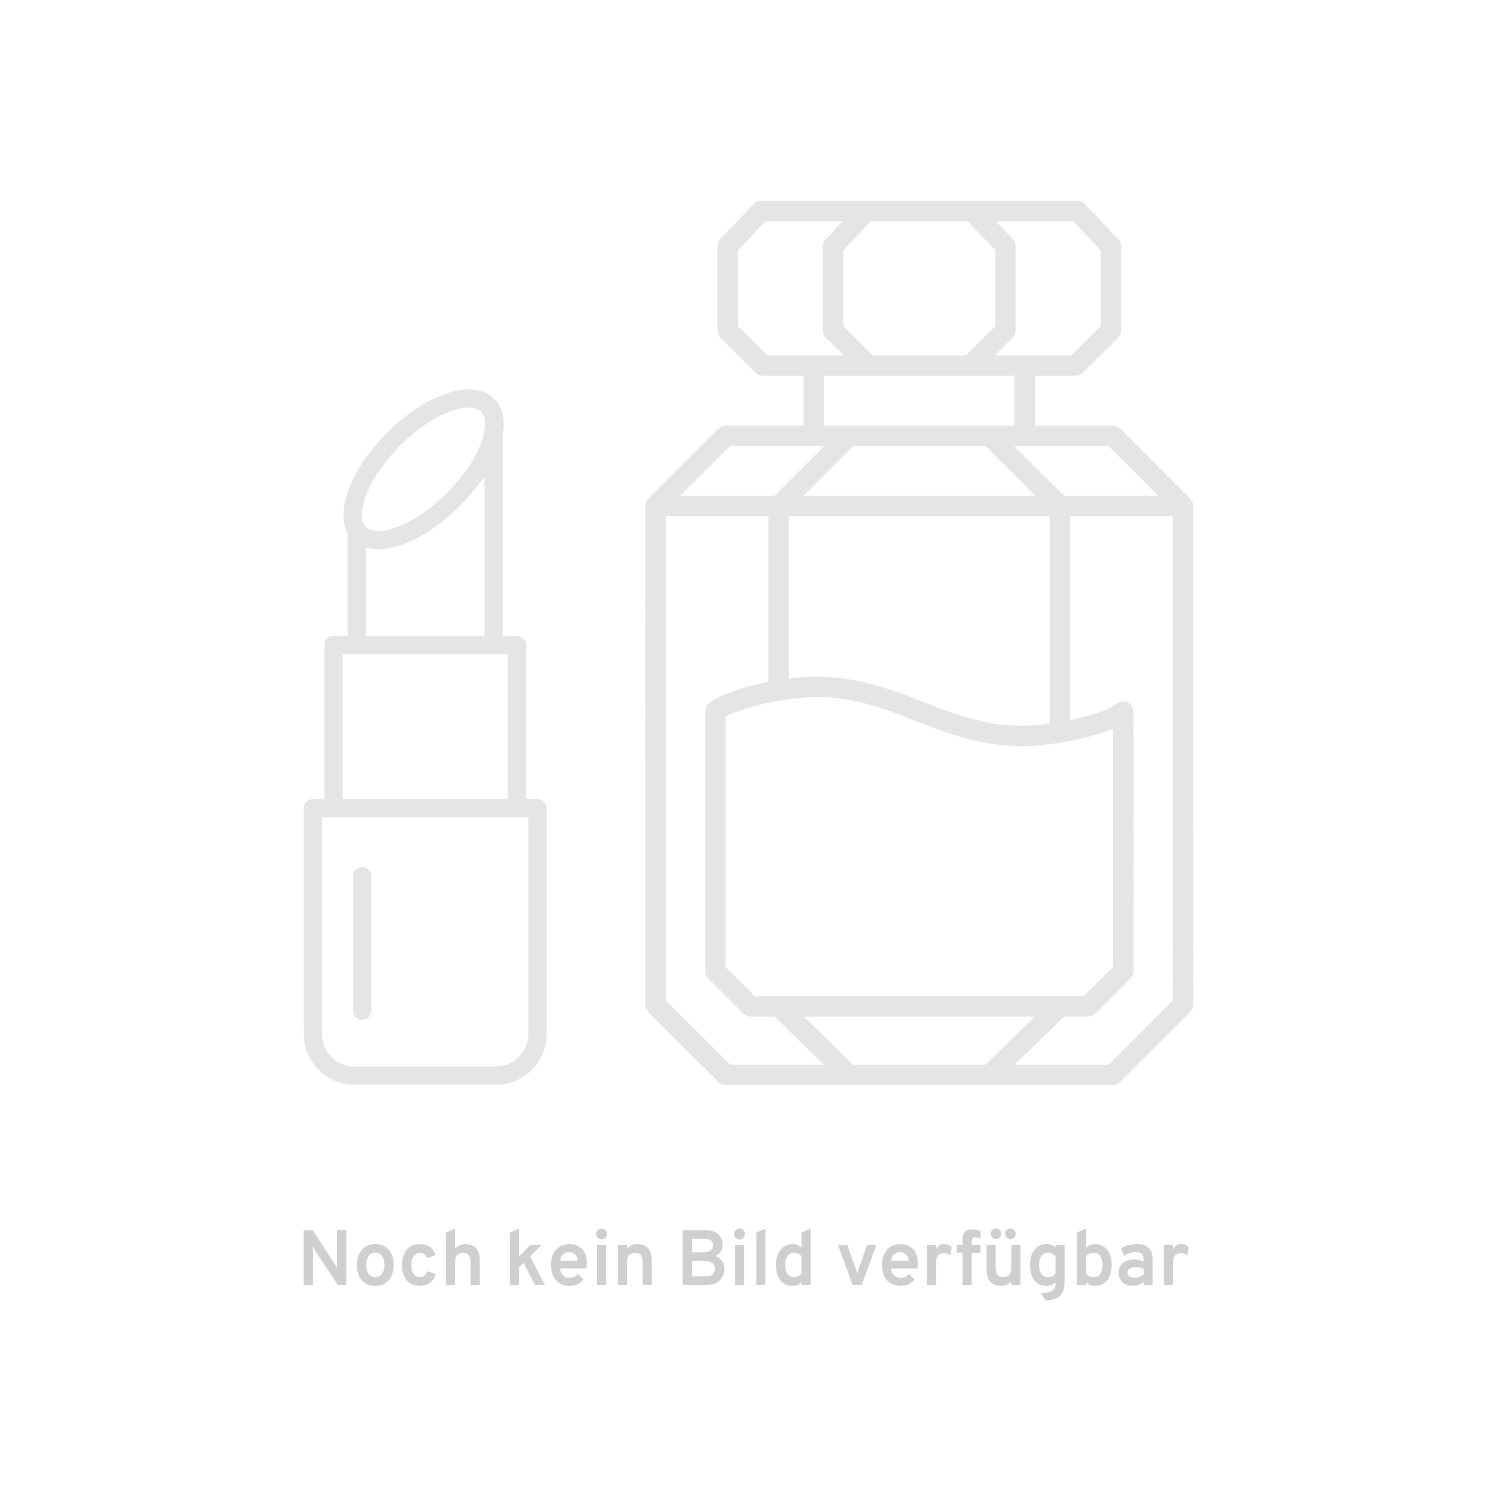 orange bergamot hand wash von molton brown bestellen bei ludwig beck beauty online. Black Bedroom Furniture Sets. Home Design Ideas